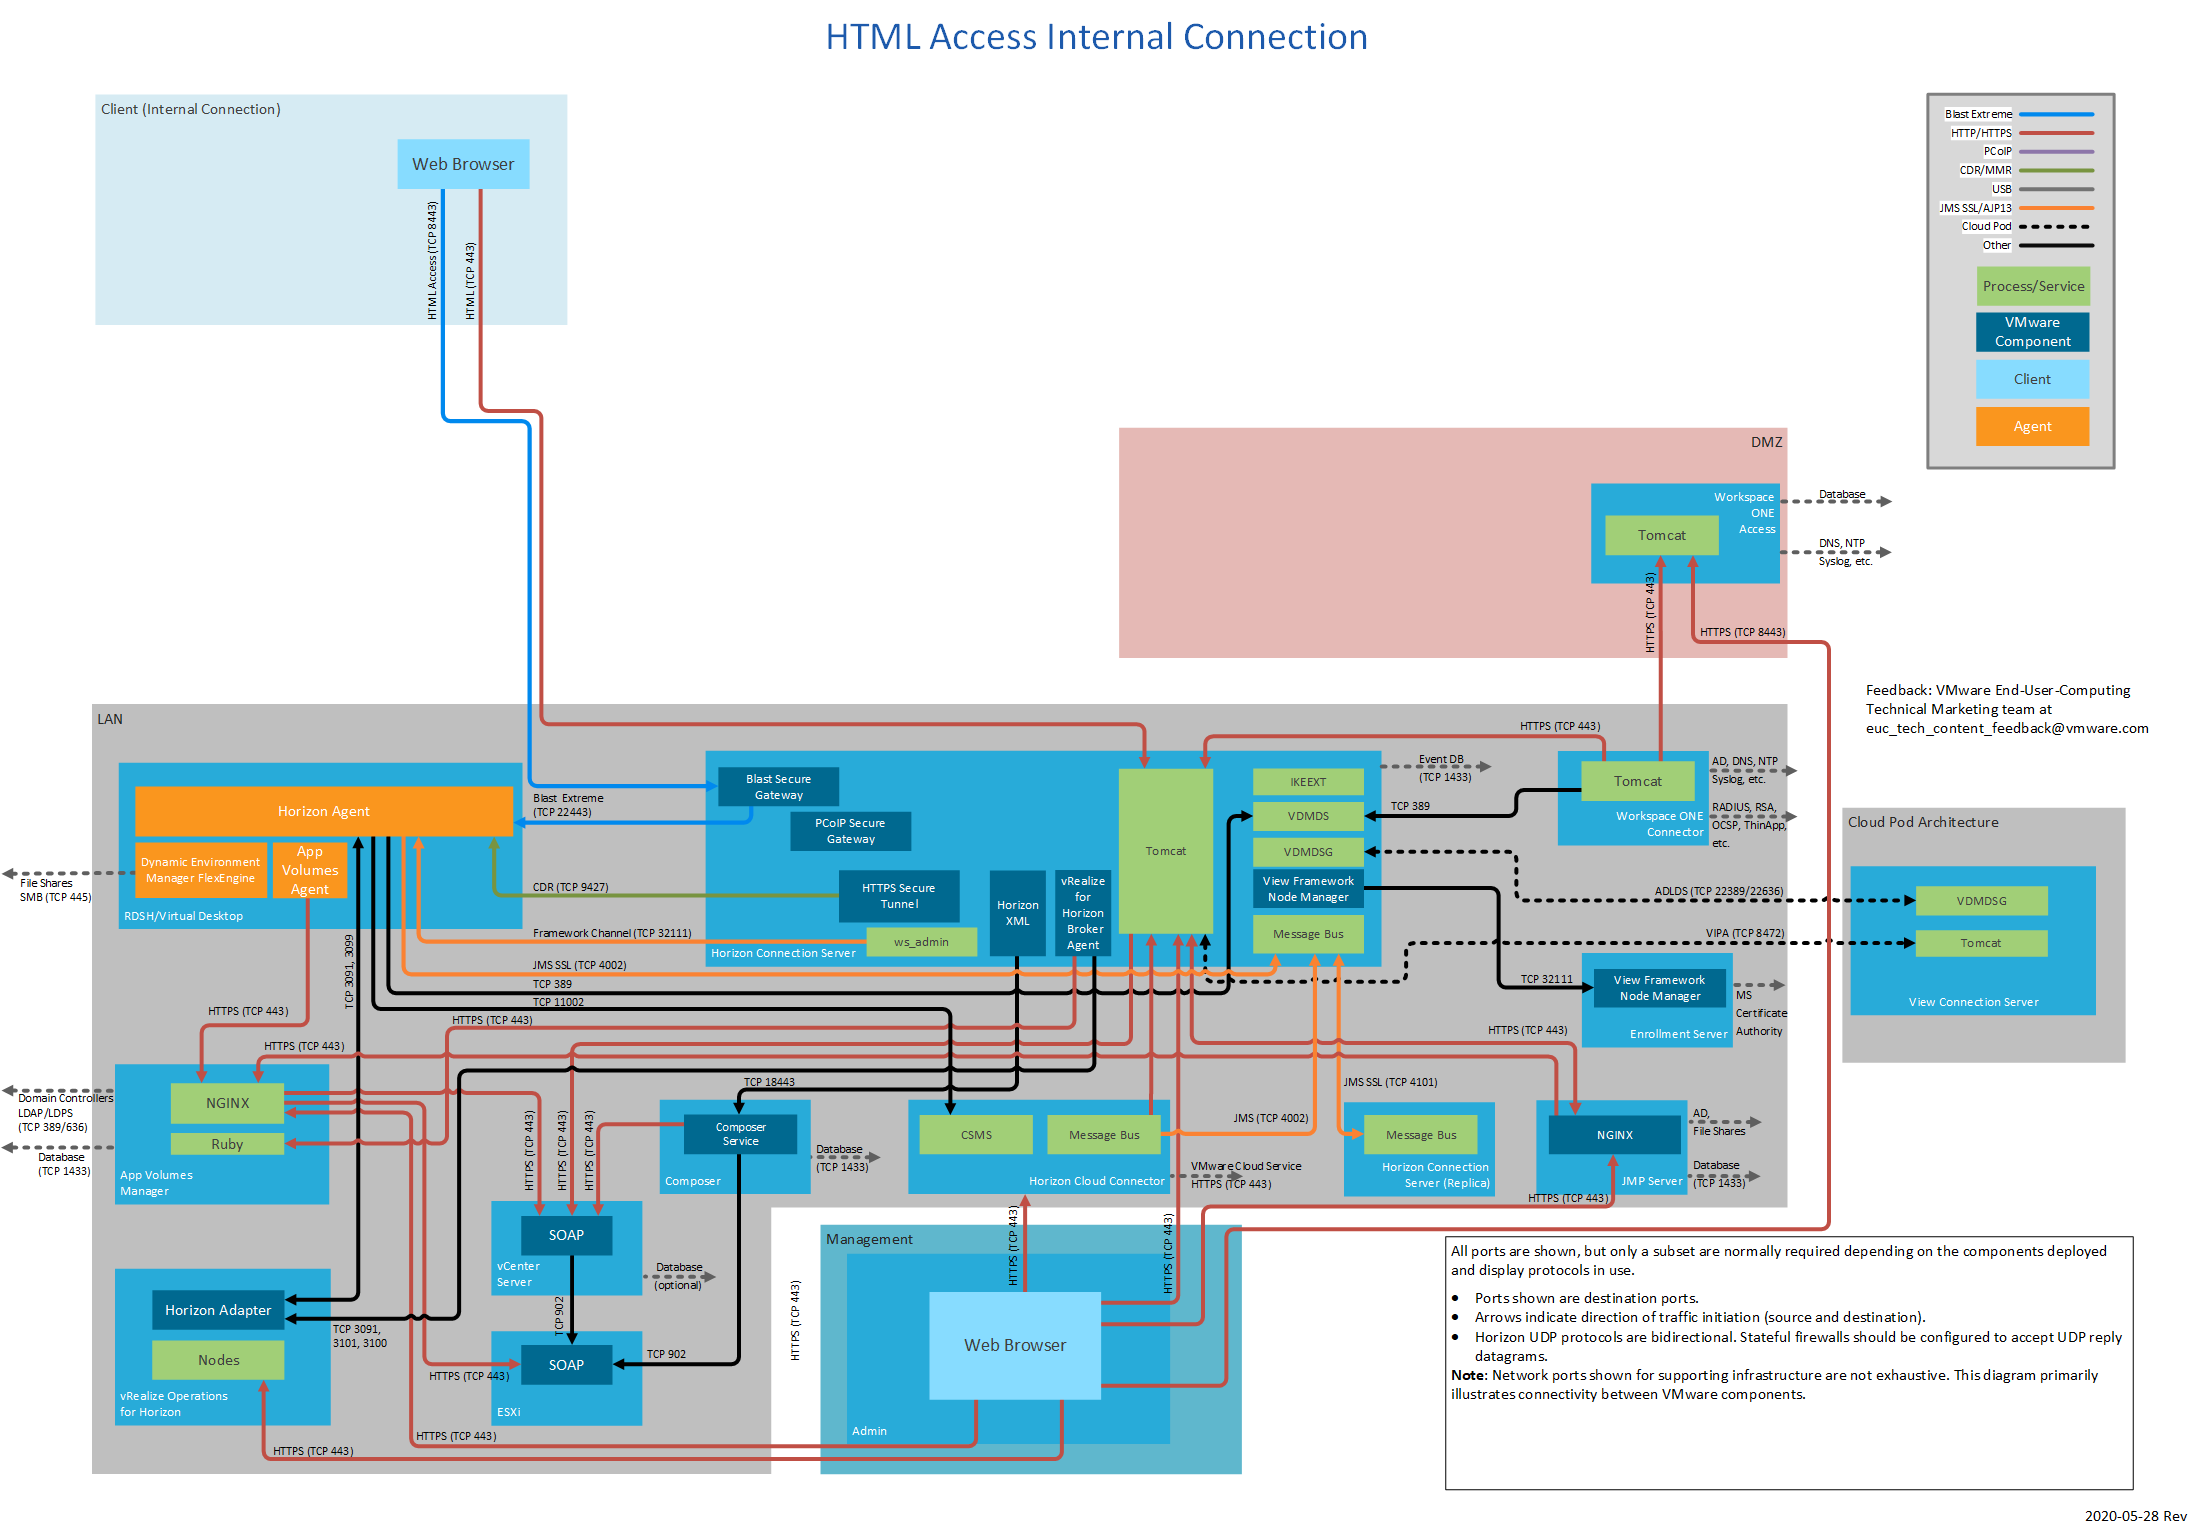 HTML access internal connection network ports.